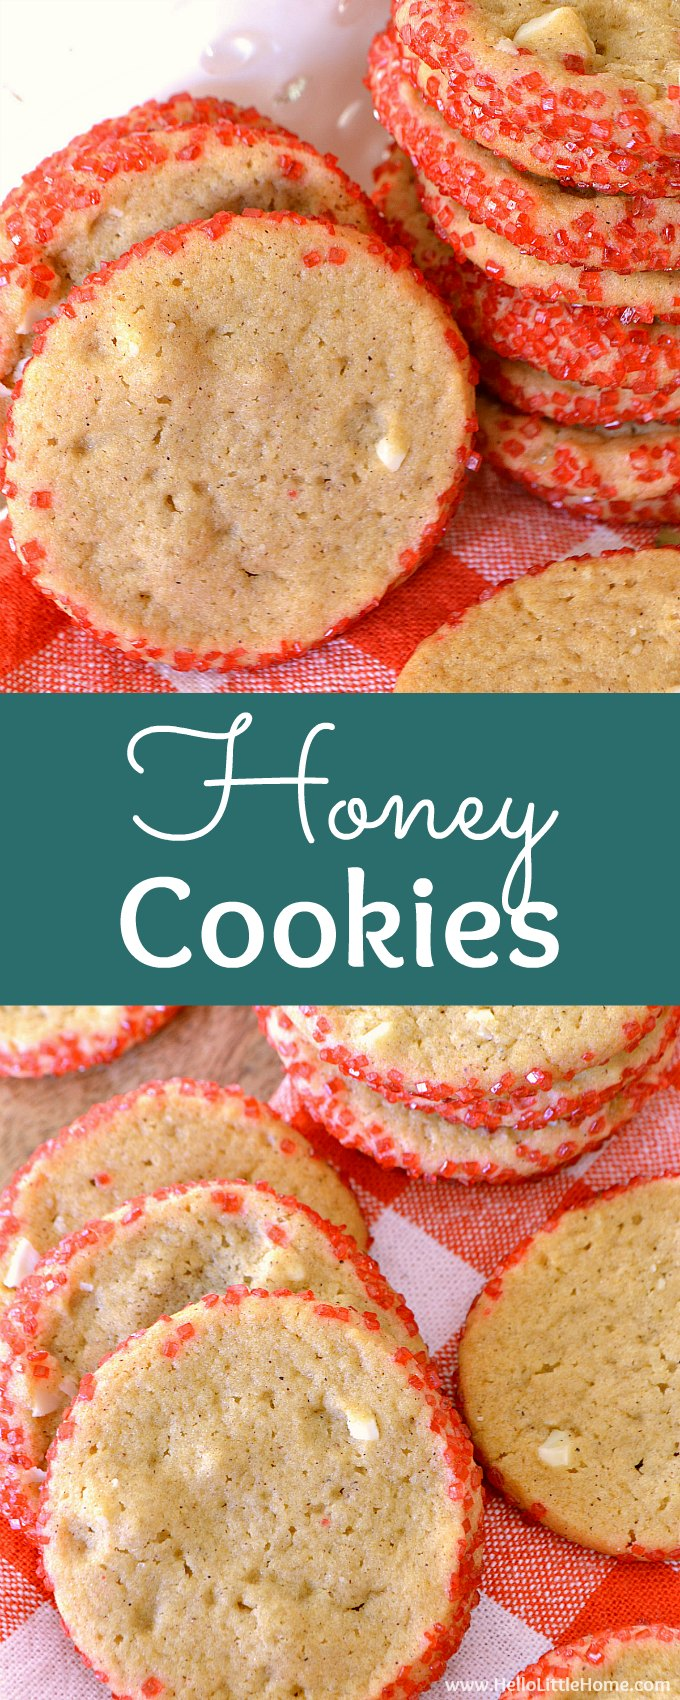 Honey Cookies recipe … your whole family will love this easy Christmas cookie recipe! These unique, old fashioned Honey Cookies are homemade with almonds and no eggs, and spiced with cinnamon and cardamon. This is a traditional Christmas cookie recipe just like mom used to make that's crispy on the edges and chewy in the middle. The best Honey Cookie recipe for the holiday season! | Hello Little Home